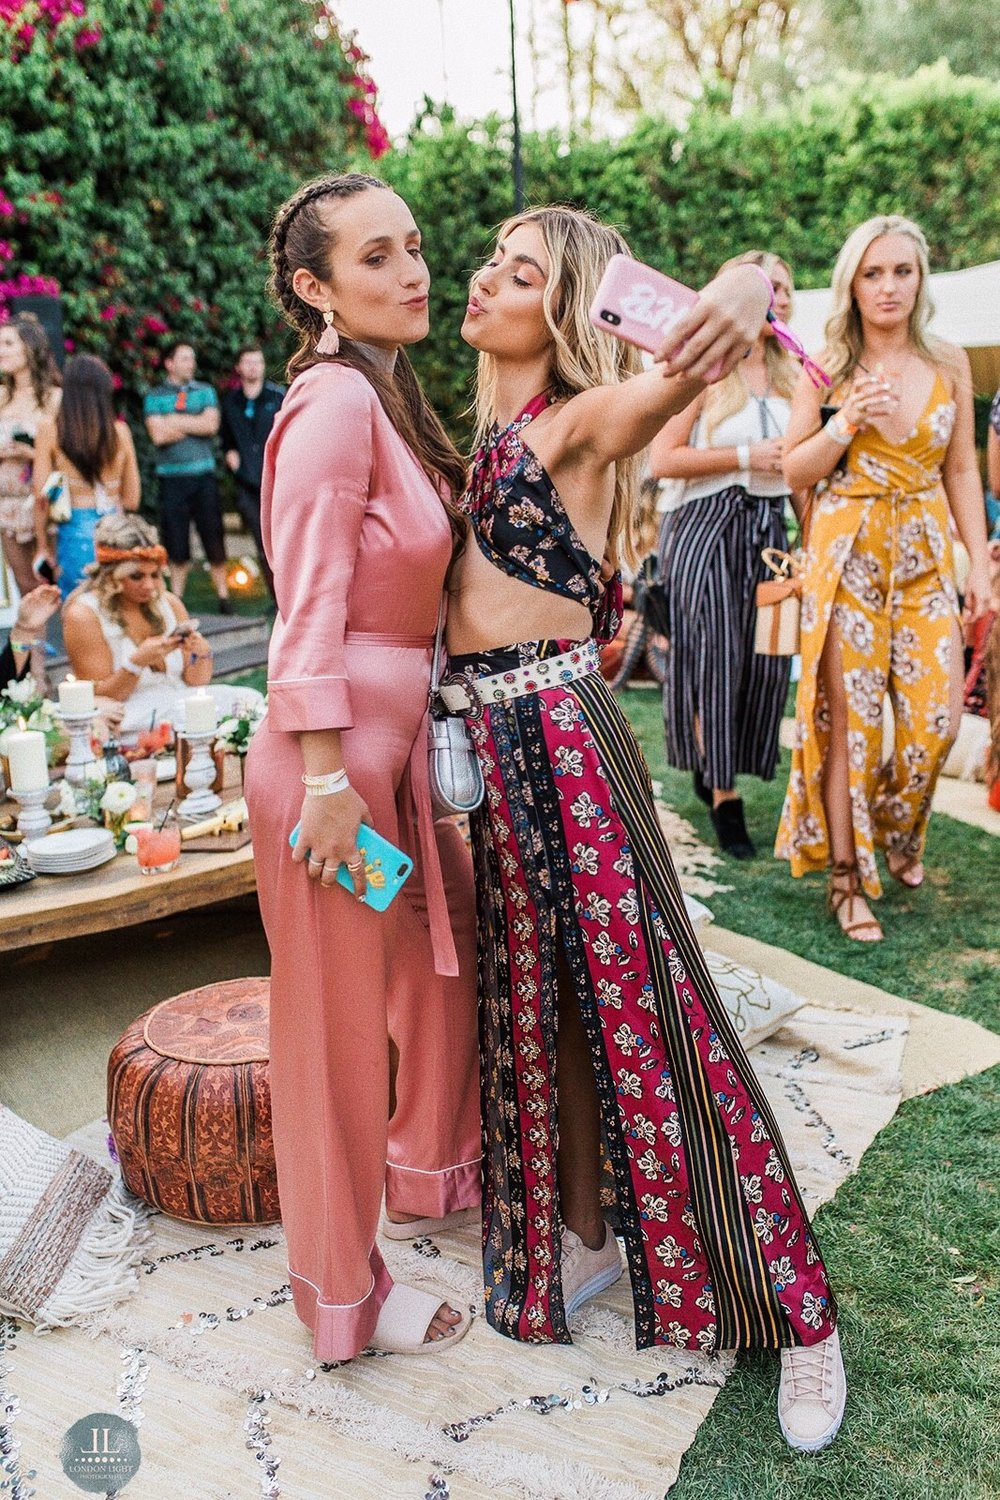 YIN 2MY YANG SOPHIE & CHARLOTTE BICKLEY SISTER NYC BLOGGERS COACHELLA APRIL 2018